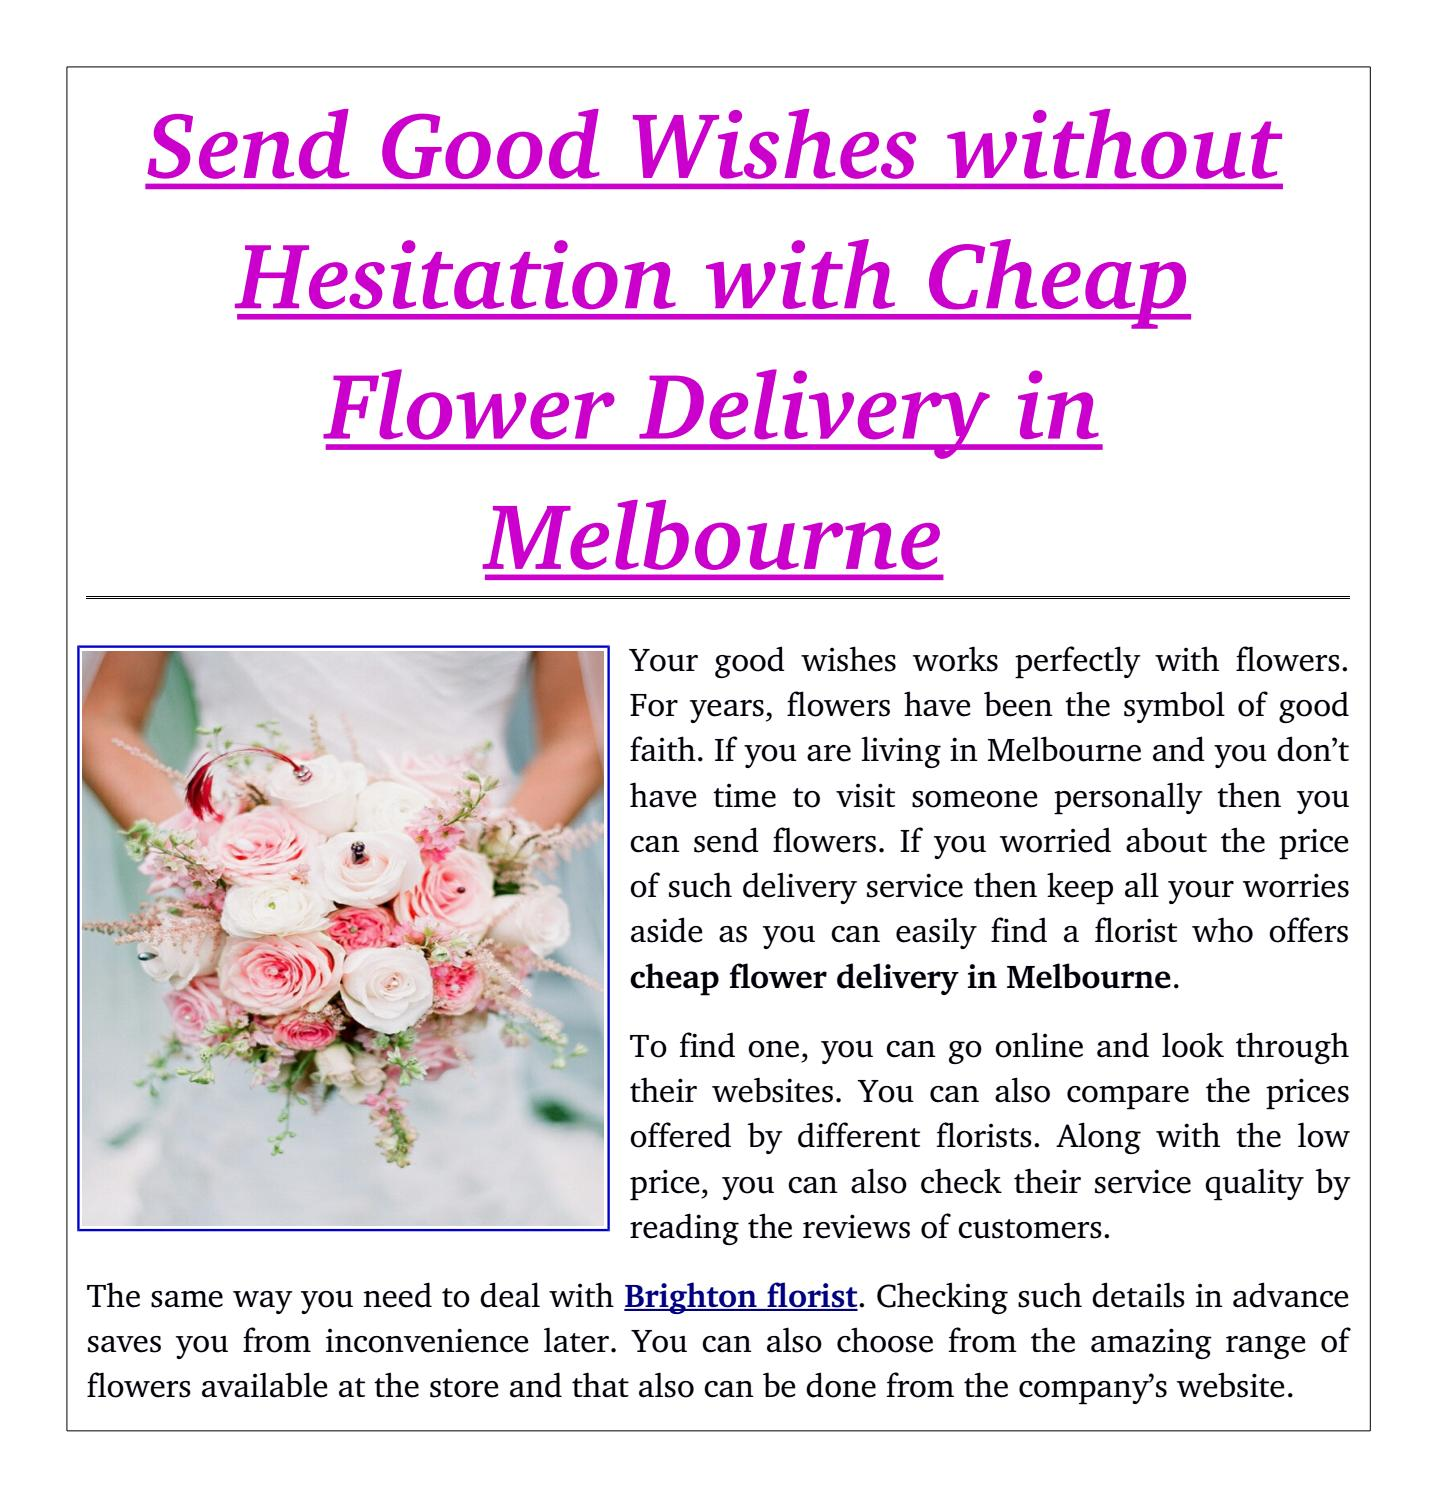 Send Good Wishes Without Hesitation With Cheap Flower Delivery In